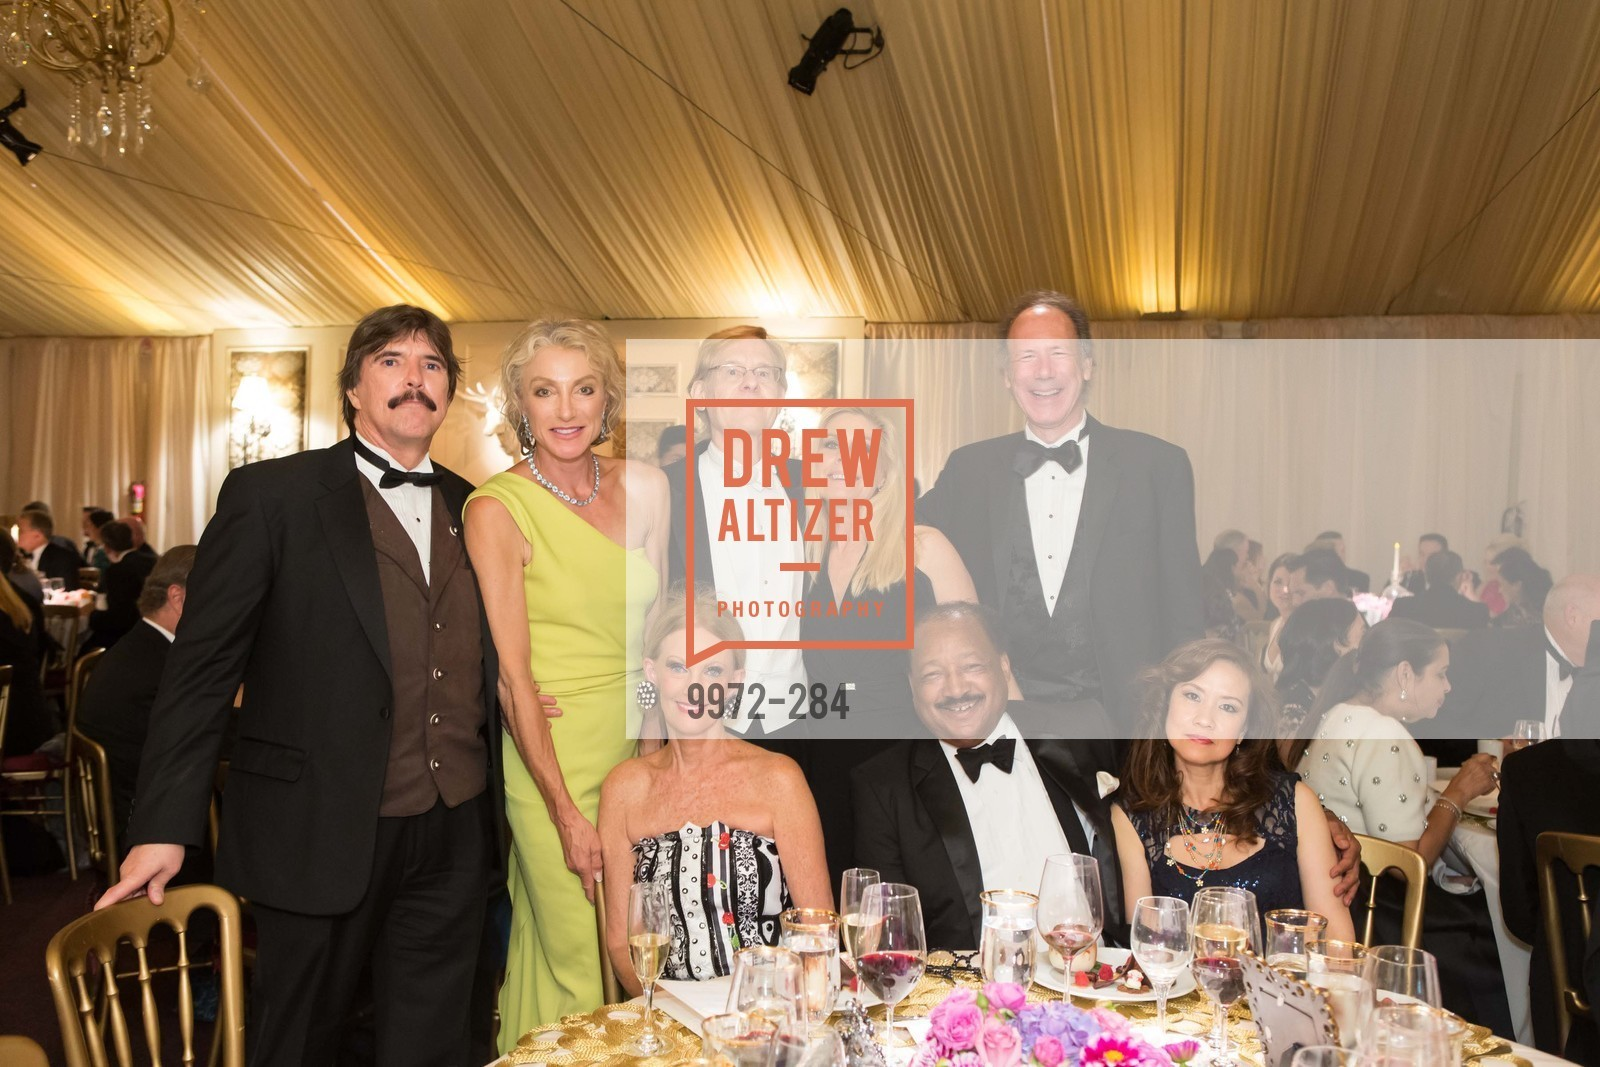 John Rosin, Alisa Burgess-Blajwas, Belinda Berry, Larry Kern, Jacqueline Jacoby, Charles Belle, Tom Barrett, Nina Belle, Opera Ball 2015: Moonlight & Music, War Memorial Opera House. 301 Van Ness Ave, September 11th, 2015,Drew Altizer, Drew Altizer Photography, full-service agency, private events, San Francisco photographer, photographer california